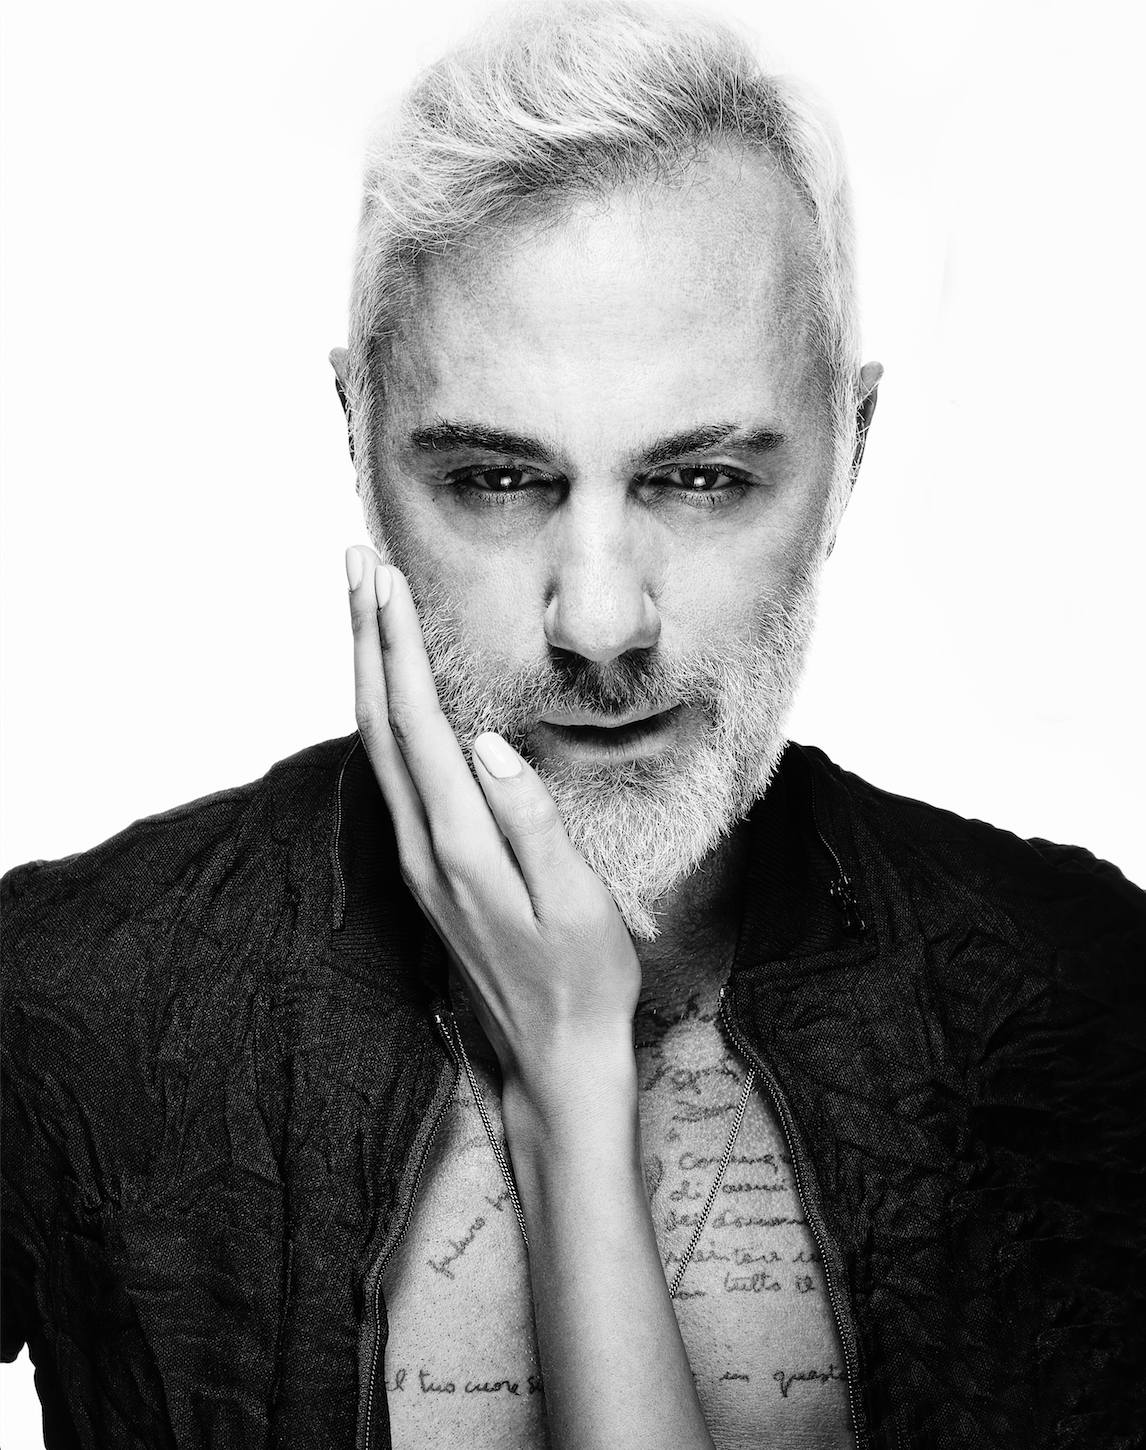 TIME TRAVEL WITH GIANLUCA VACCHI